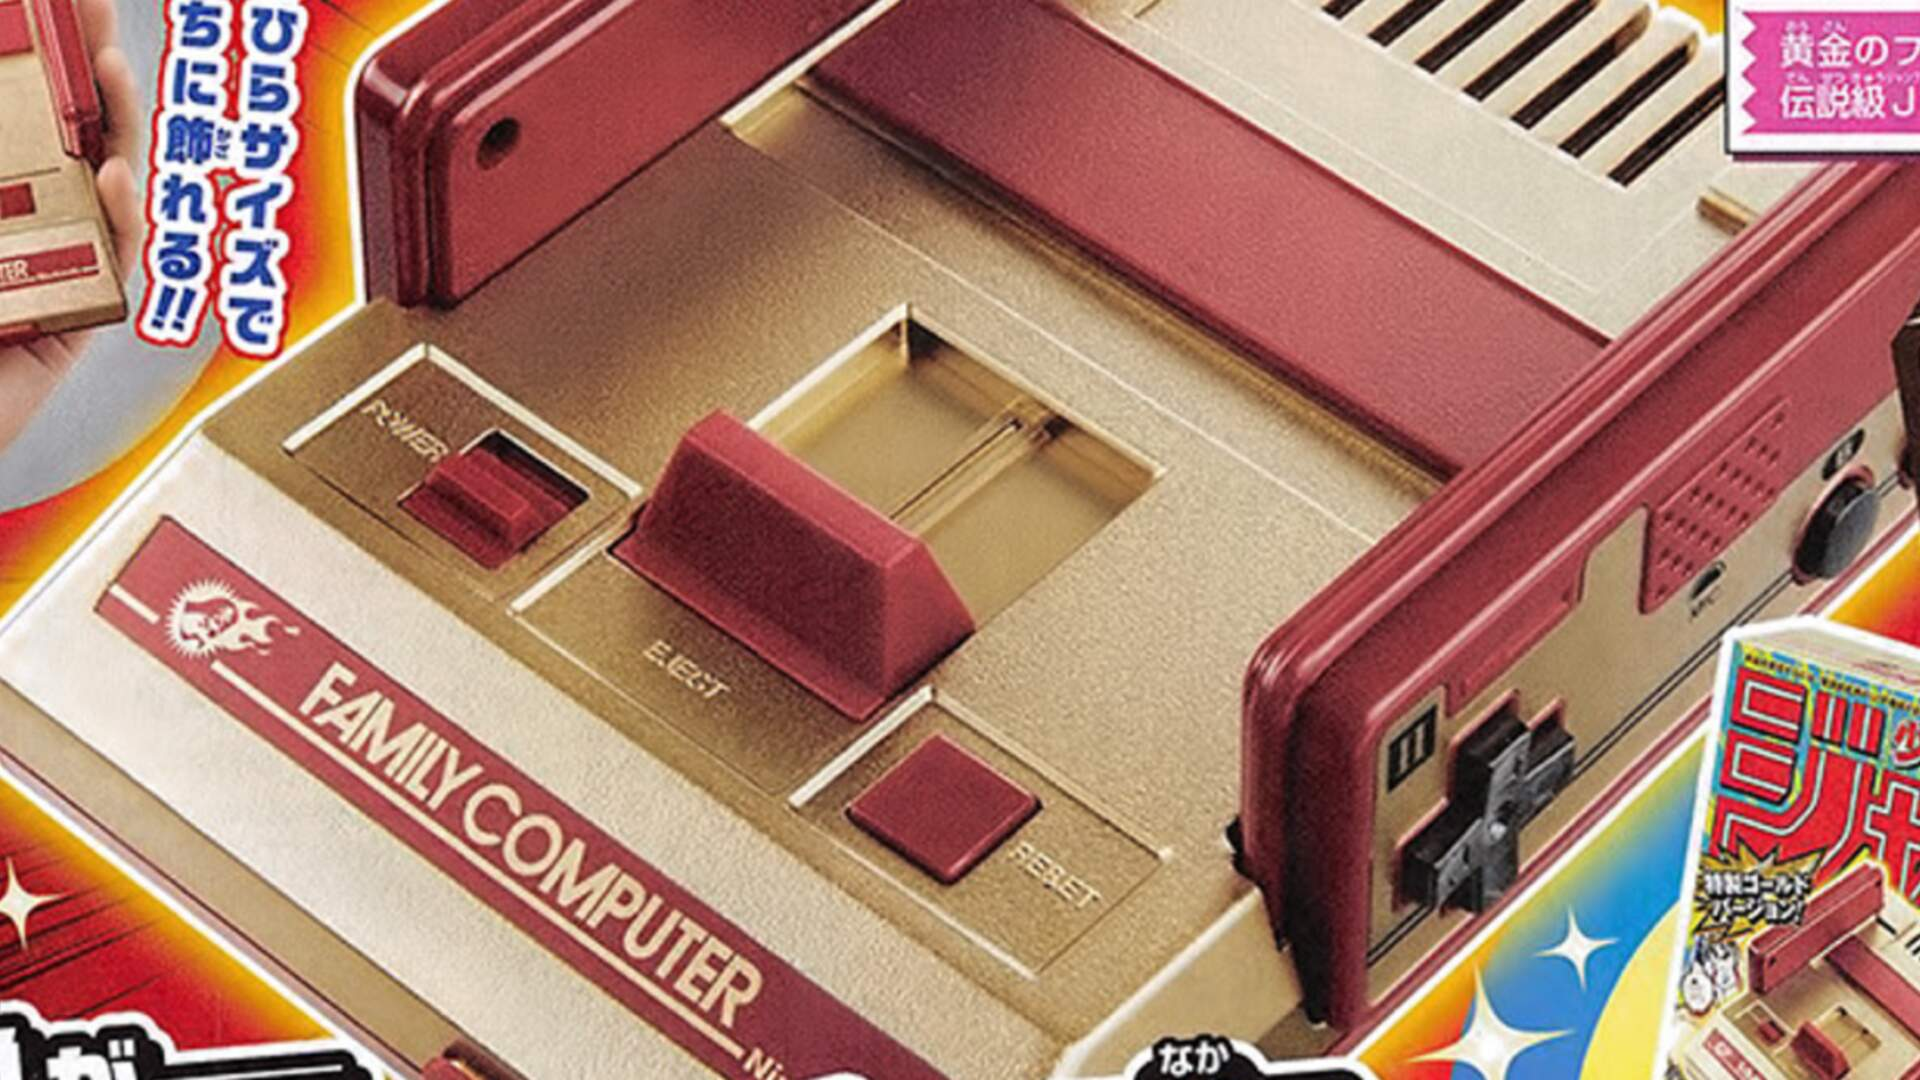 Nintendo is Releasing a Special Golden Famicom With a New Library of Games